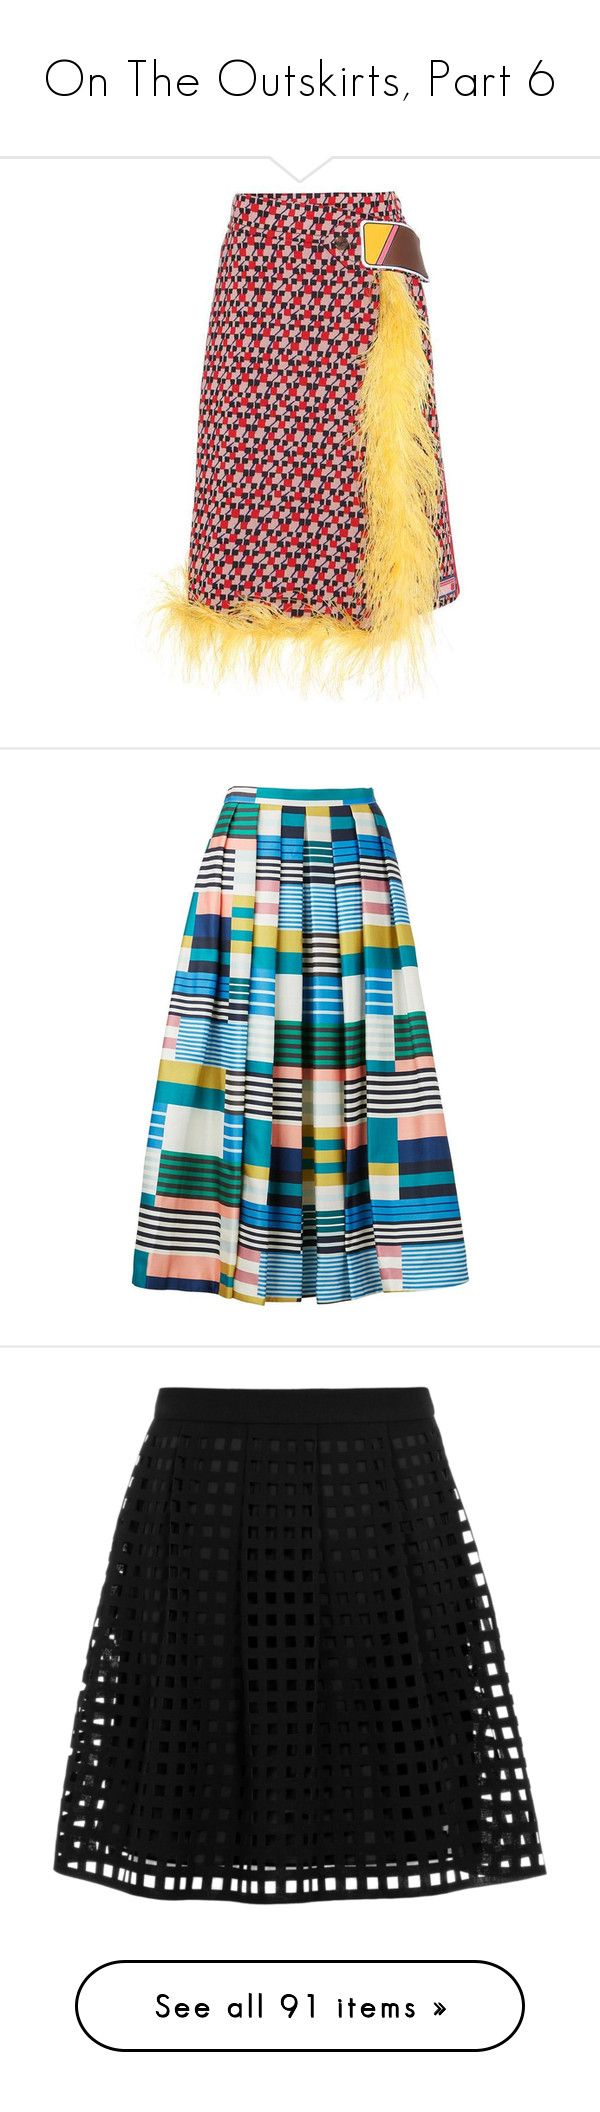 """""""On The Outskirts, Part 6"""" by happilyjynxed ❤ liked on Polyvore featuring skirts, bottoms, multicoloured, colorful skirts, prada, prada skirt, multi color skirt, multi colored skirt, full midi skirts and below knee skirts"""